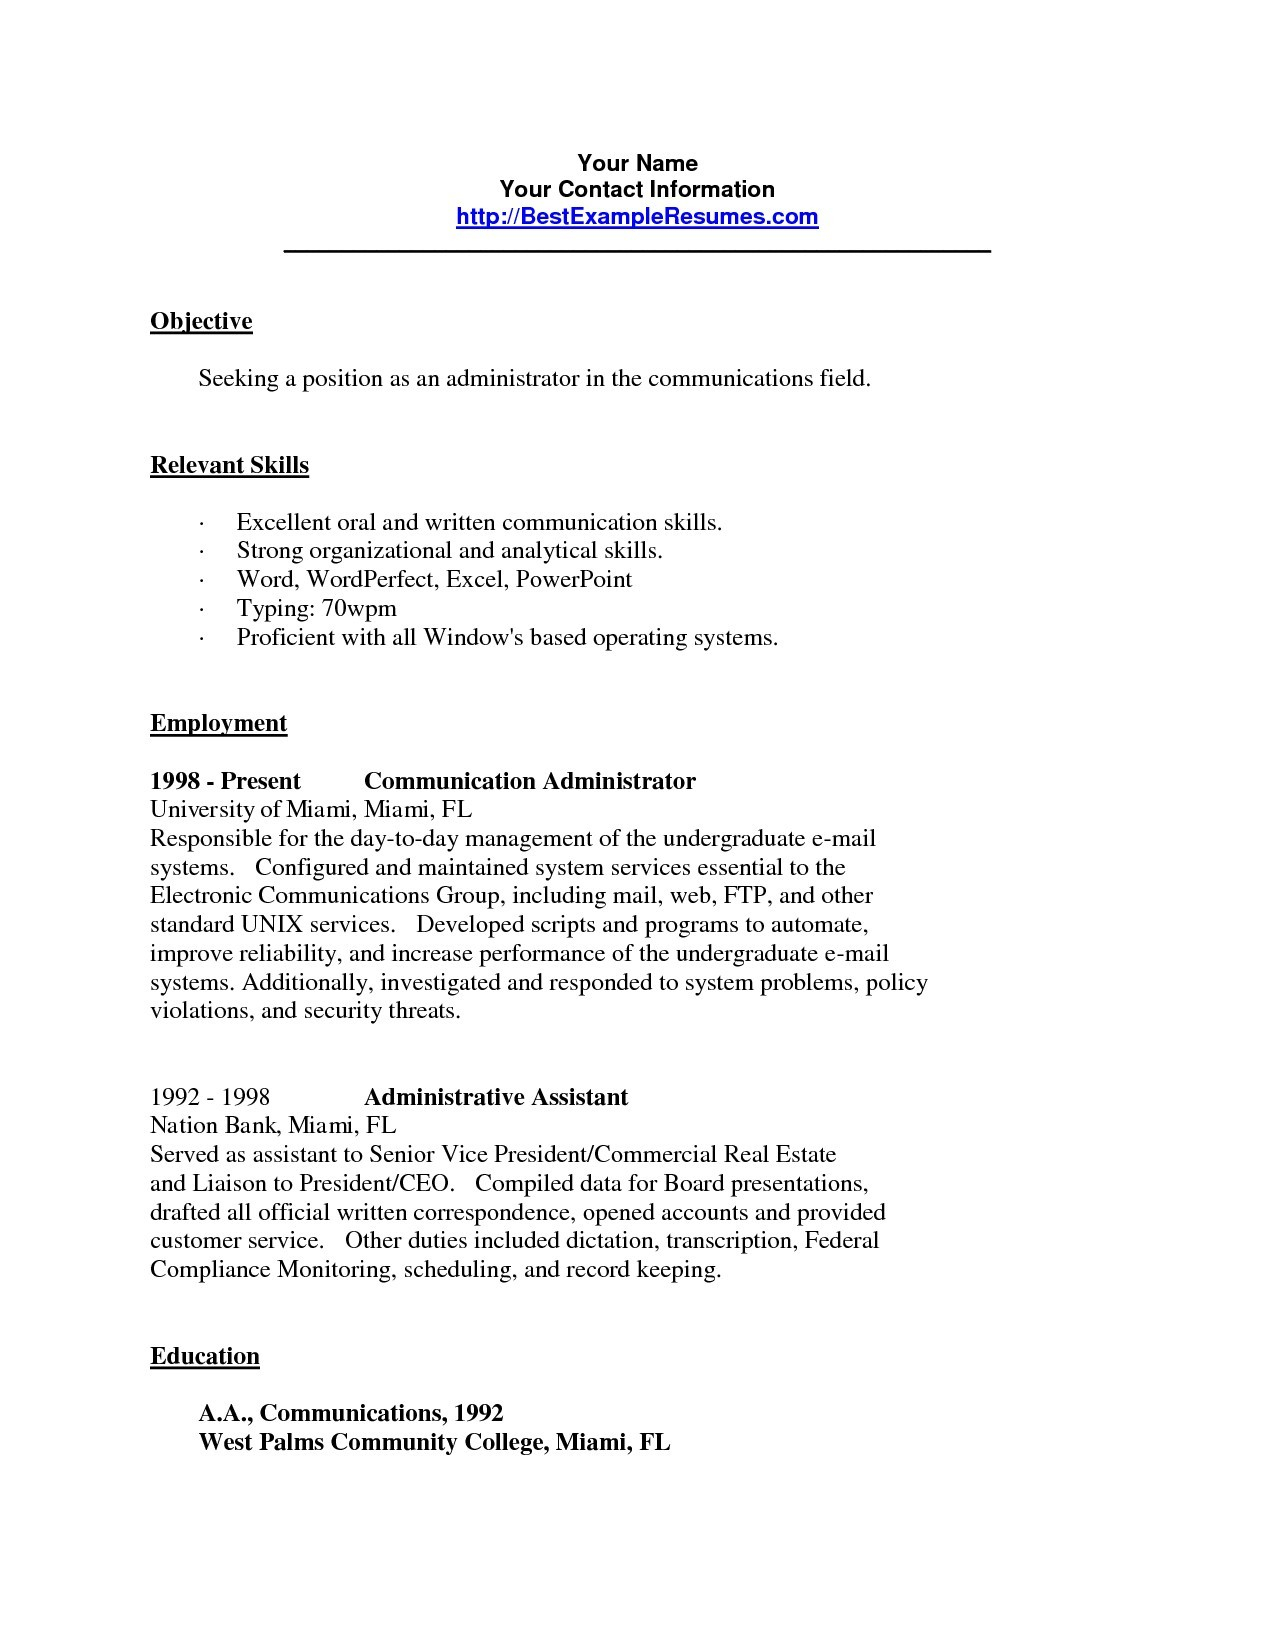 Great Skills for Resume - Skills for Resumes New Inspirational Skills for A Resume Fishing